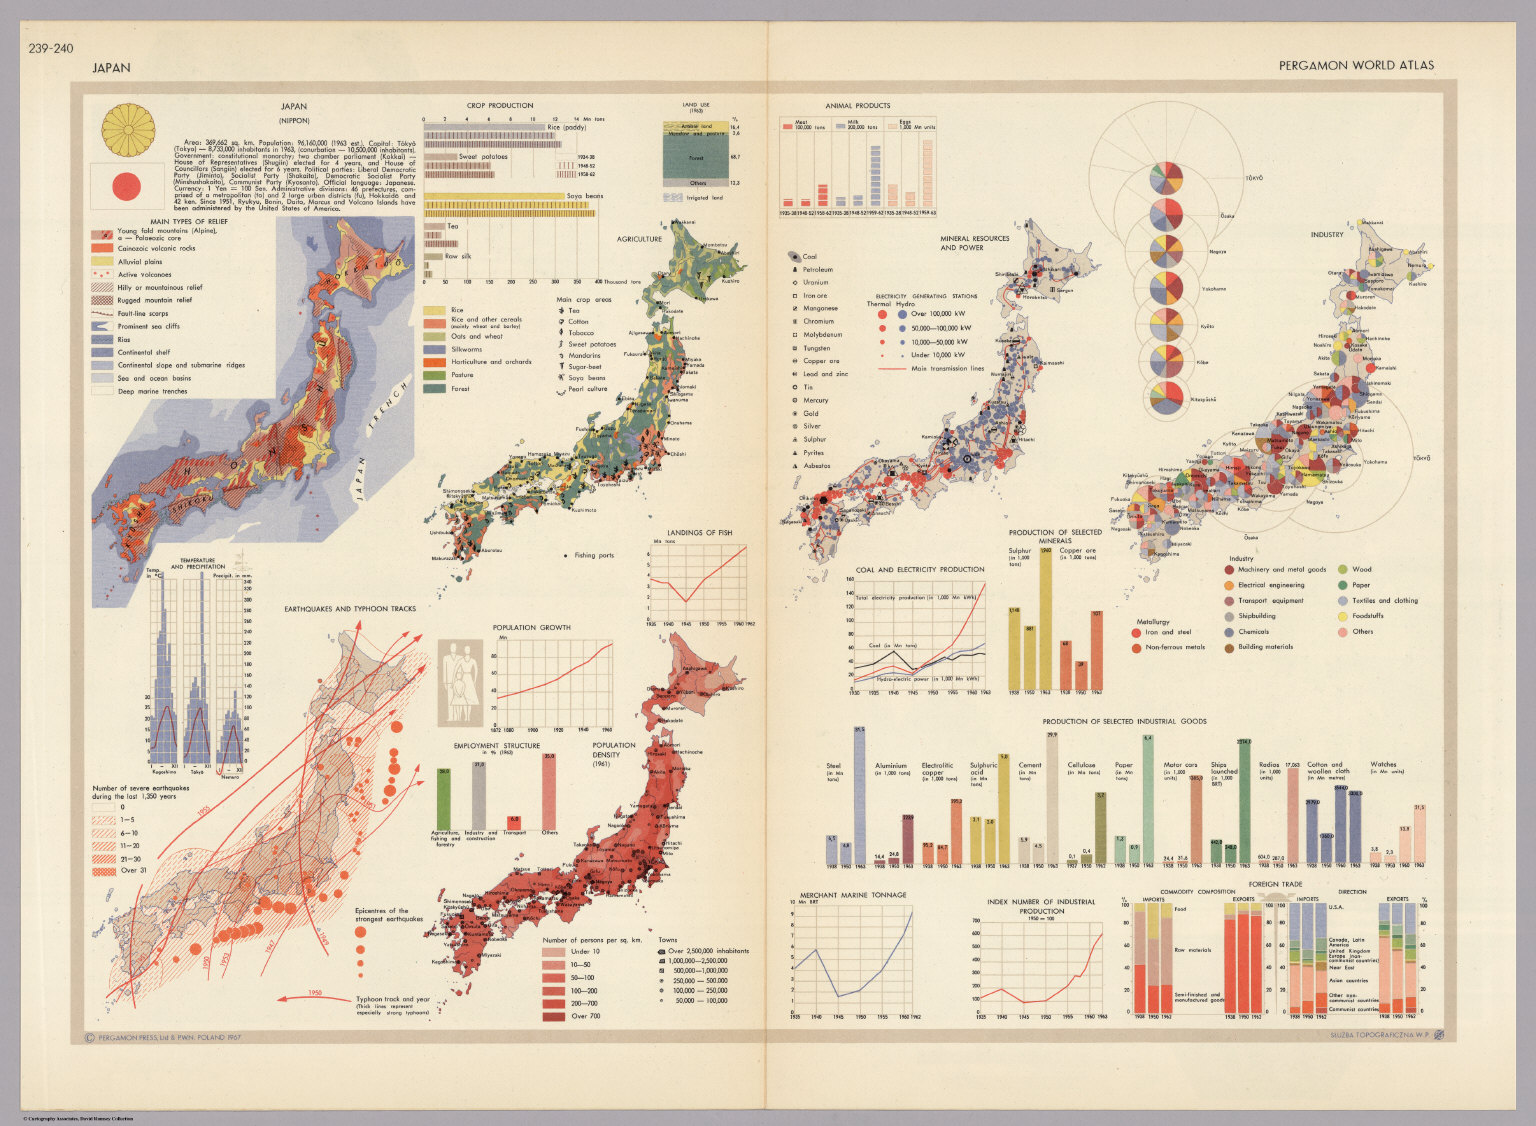 Japan pergamon world atlas david rumsey historical map collection japan pergamon world atlas gumiabroncs Gallery